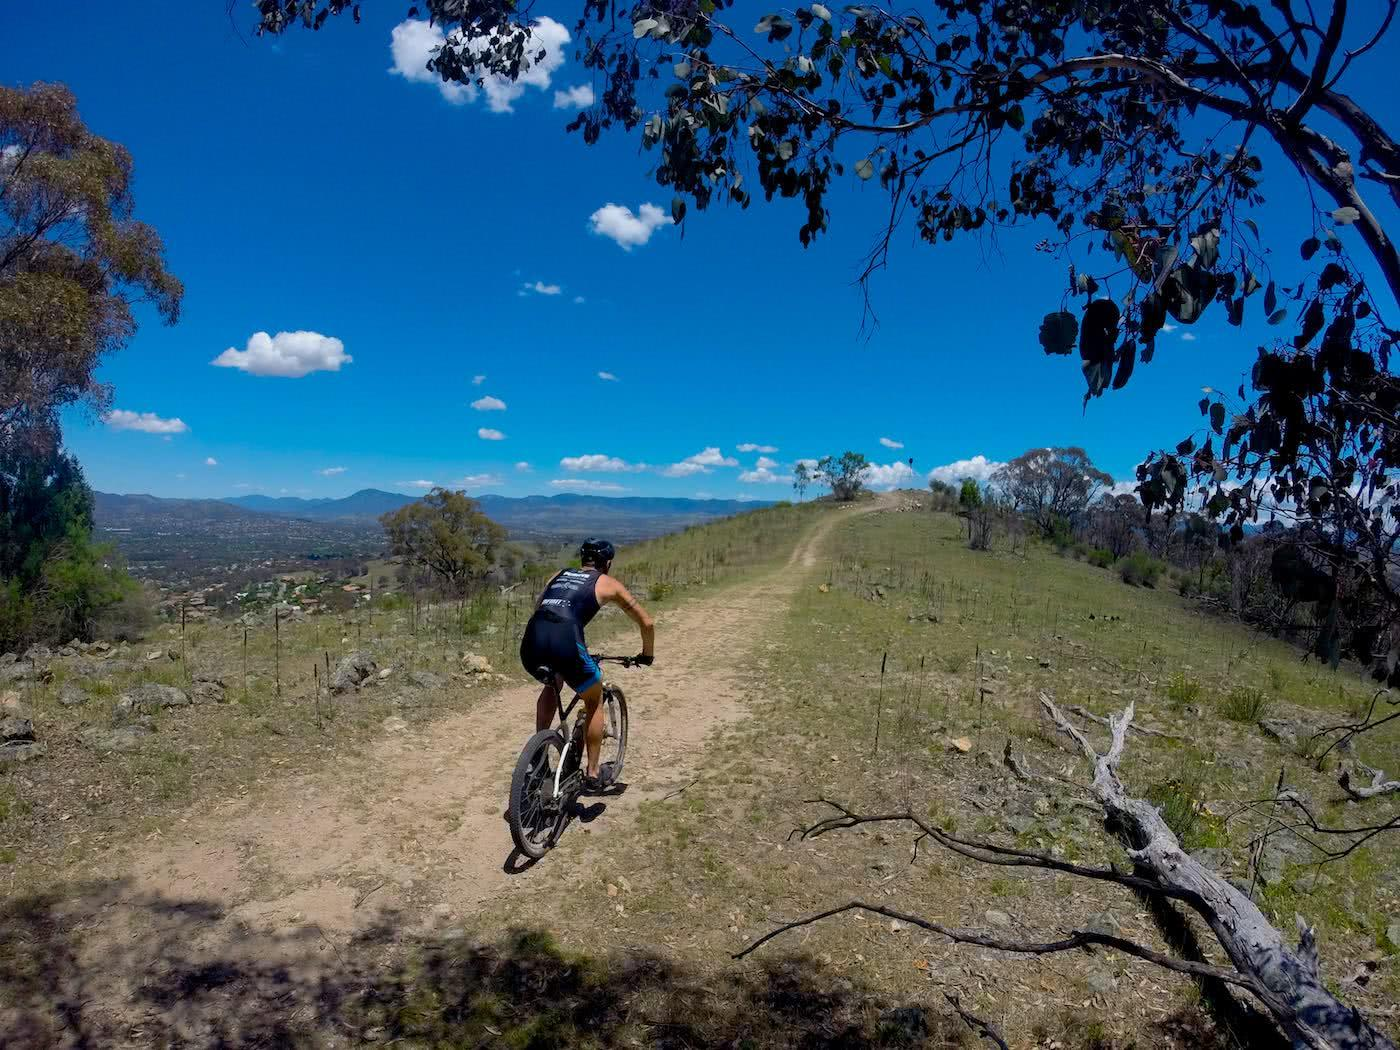 What's It Like To Compete In An Adventure Triathlon?, Rowan Beggs-French, canberra, Australian capital territory, trail running month, cycling, mountain biking